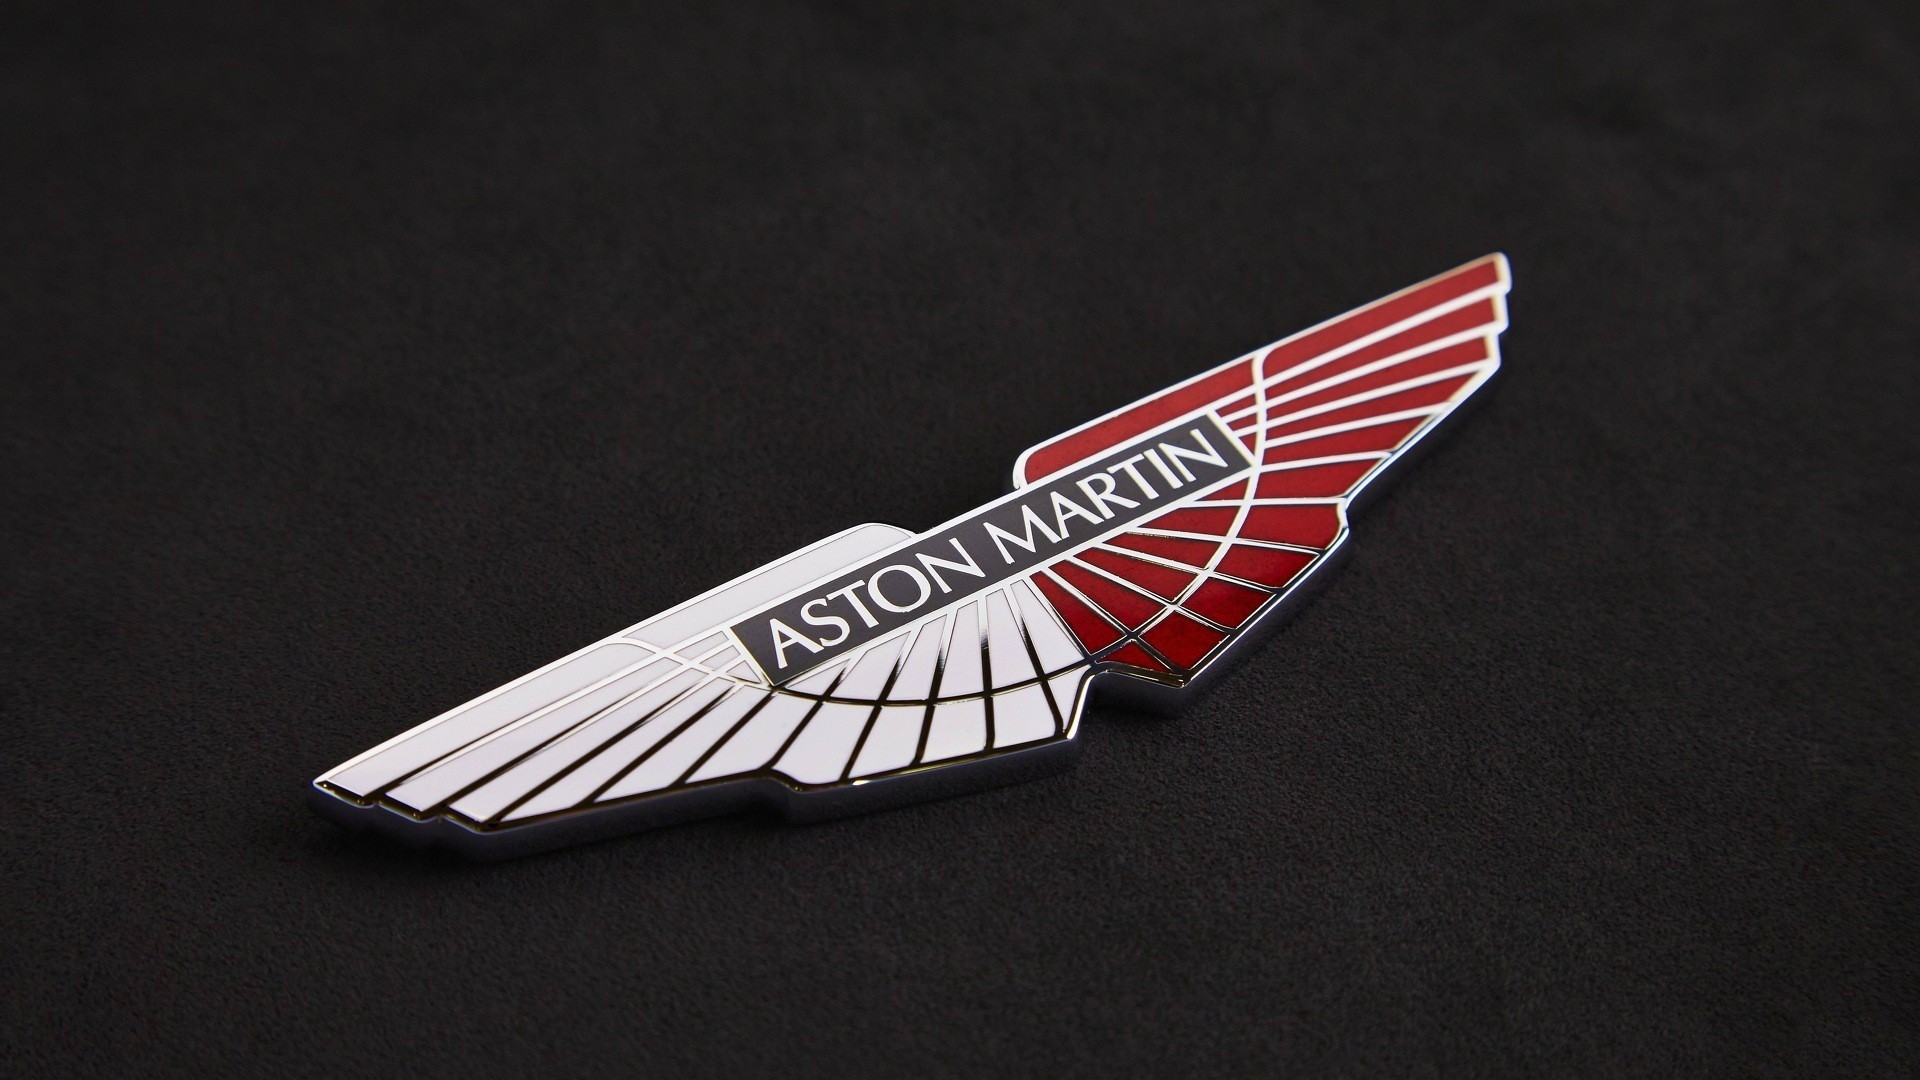 Aston Martin Logo HD Wallpaper HD Wallpapers 1920x1080